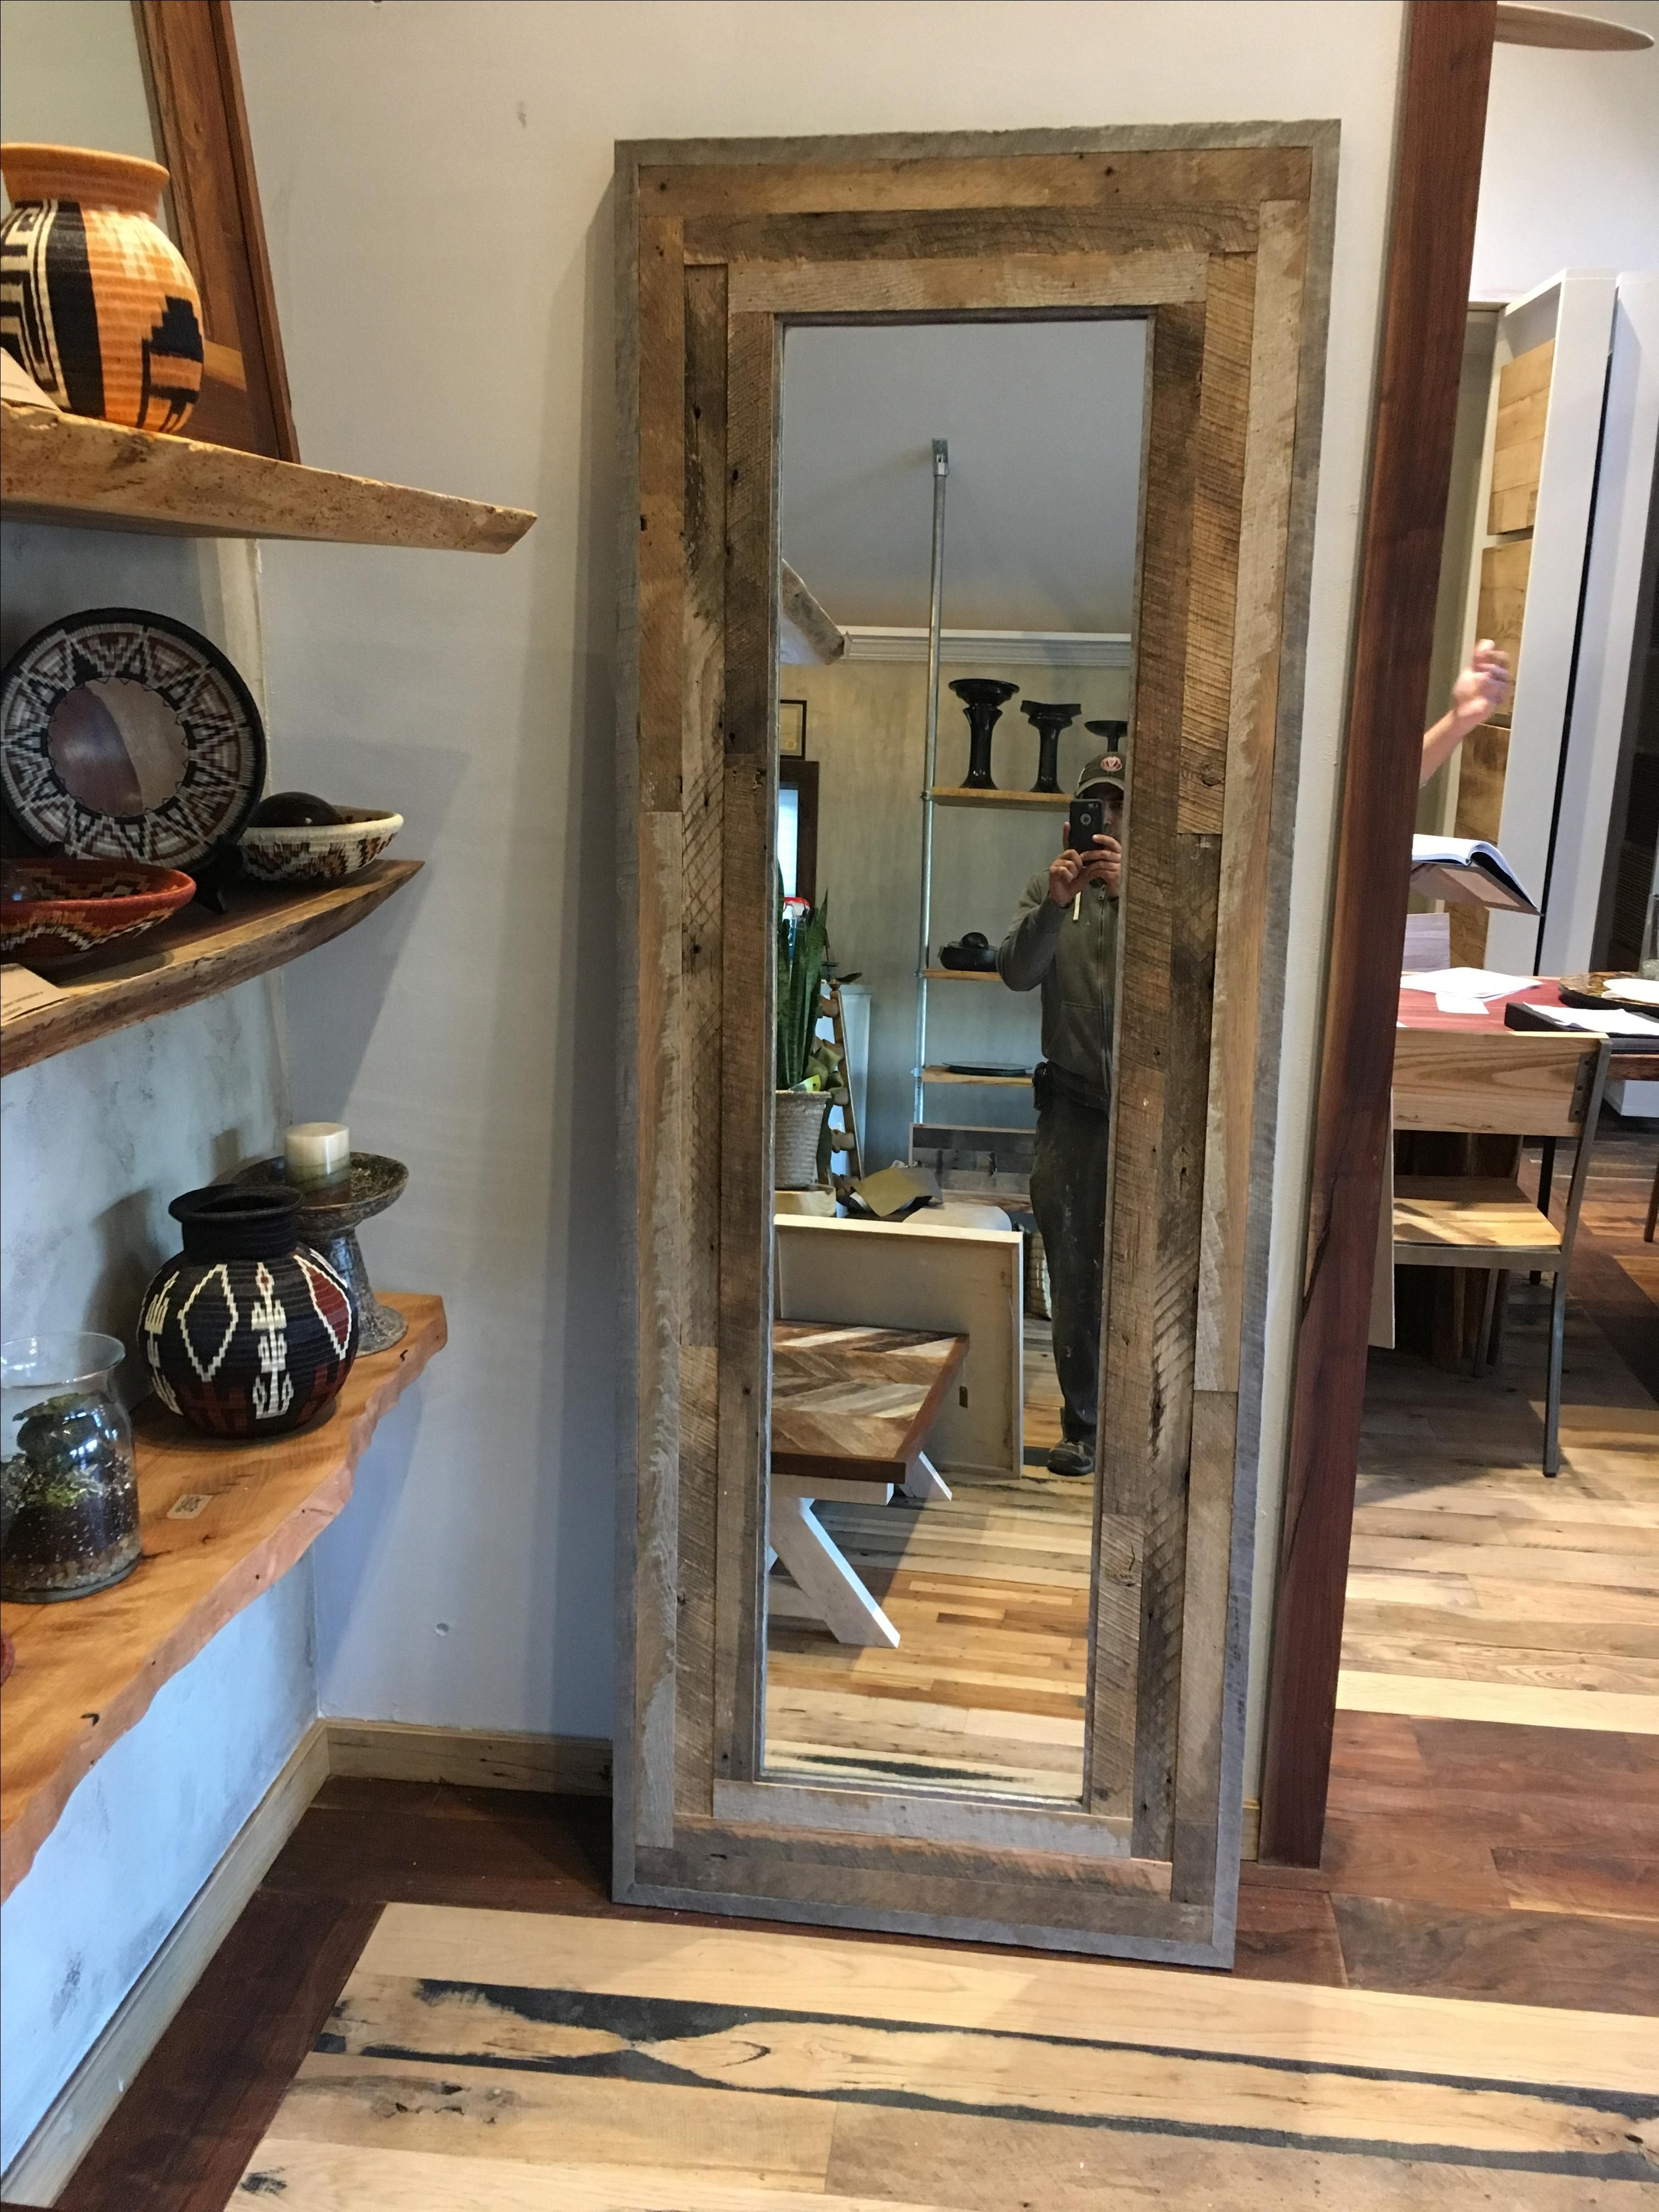 Buy A Hand Made Reclaimed Wood Leaning Wall Mirror Or Door Made To